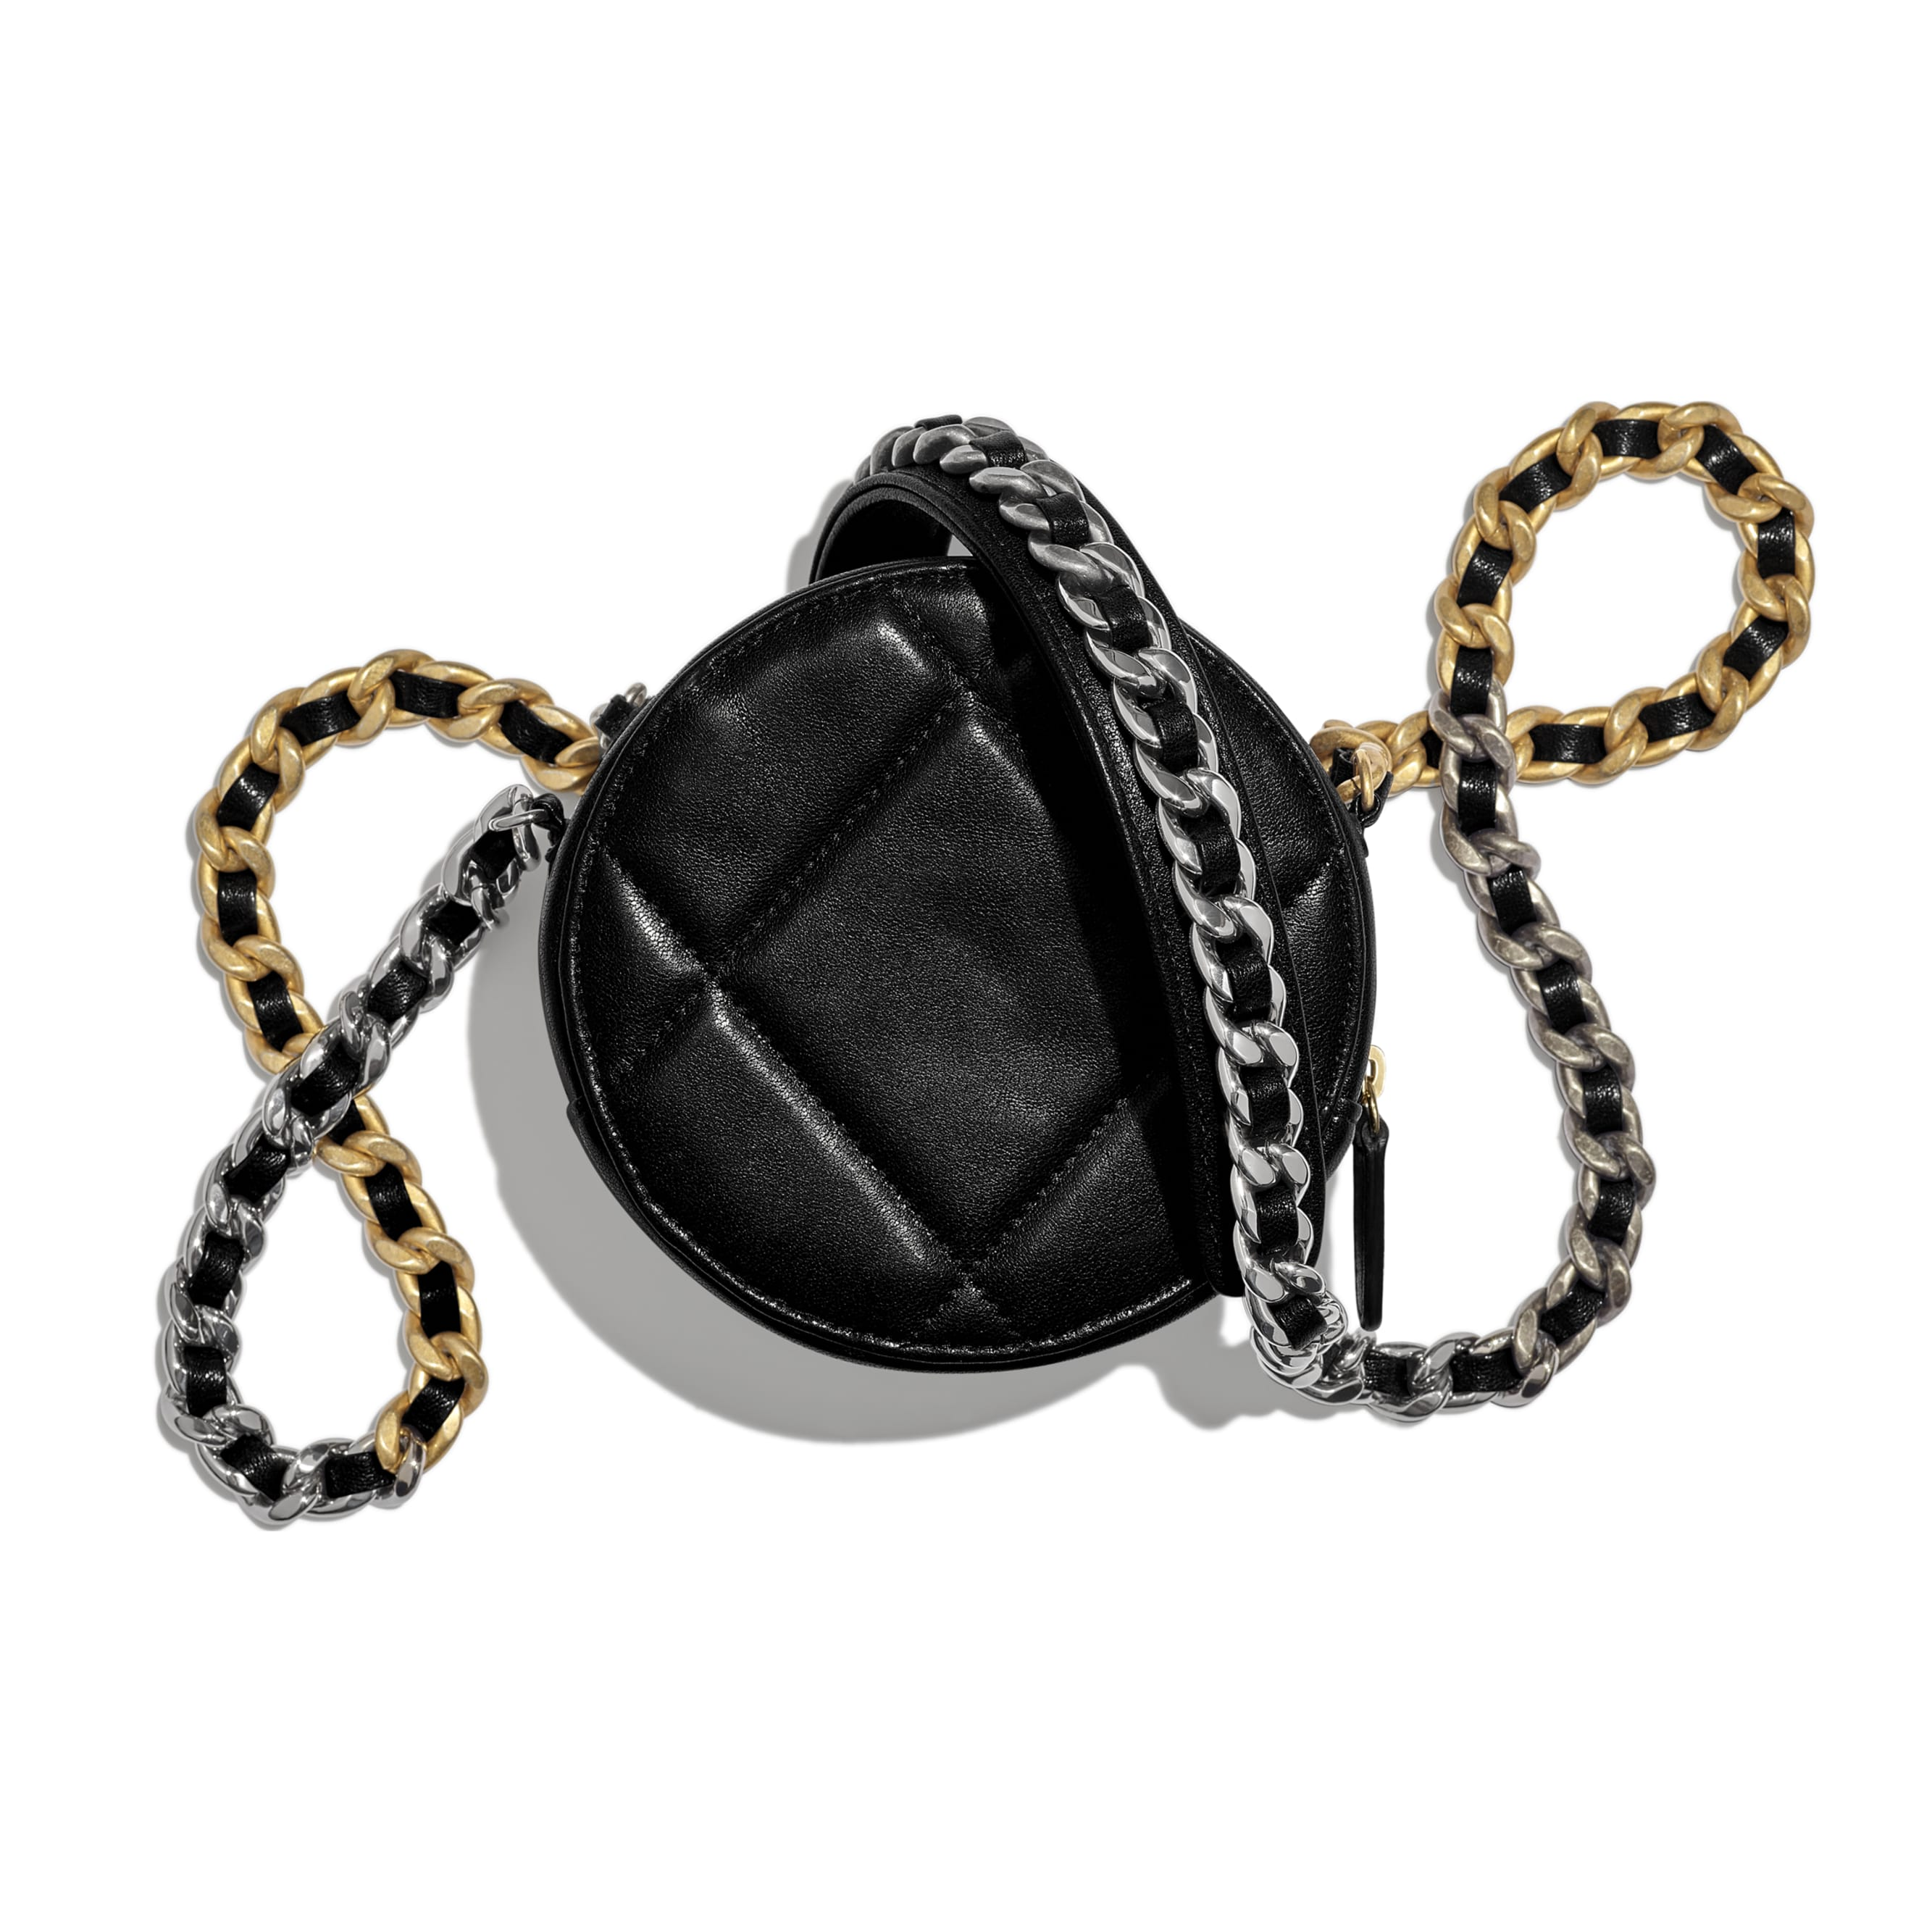 CHANEL 19 Clutch with Chain - Black - Lambskin, Gold-Tone, Silver-Tone & Ruthenium-Finish Metal - Alternative view - see standard sized version